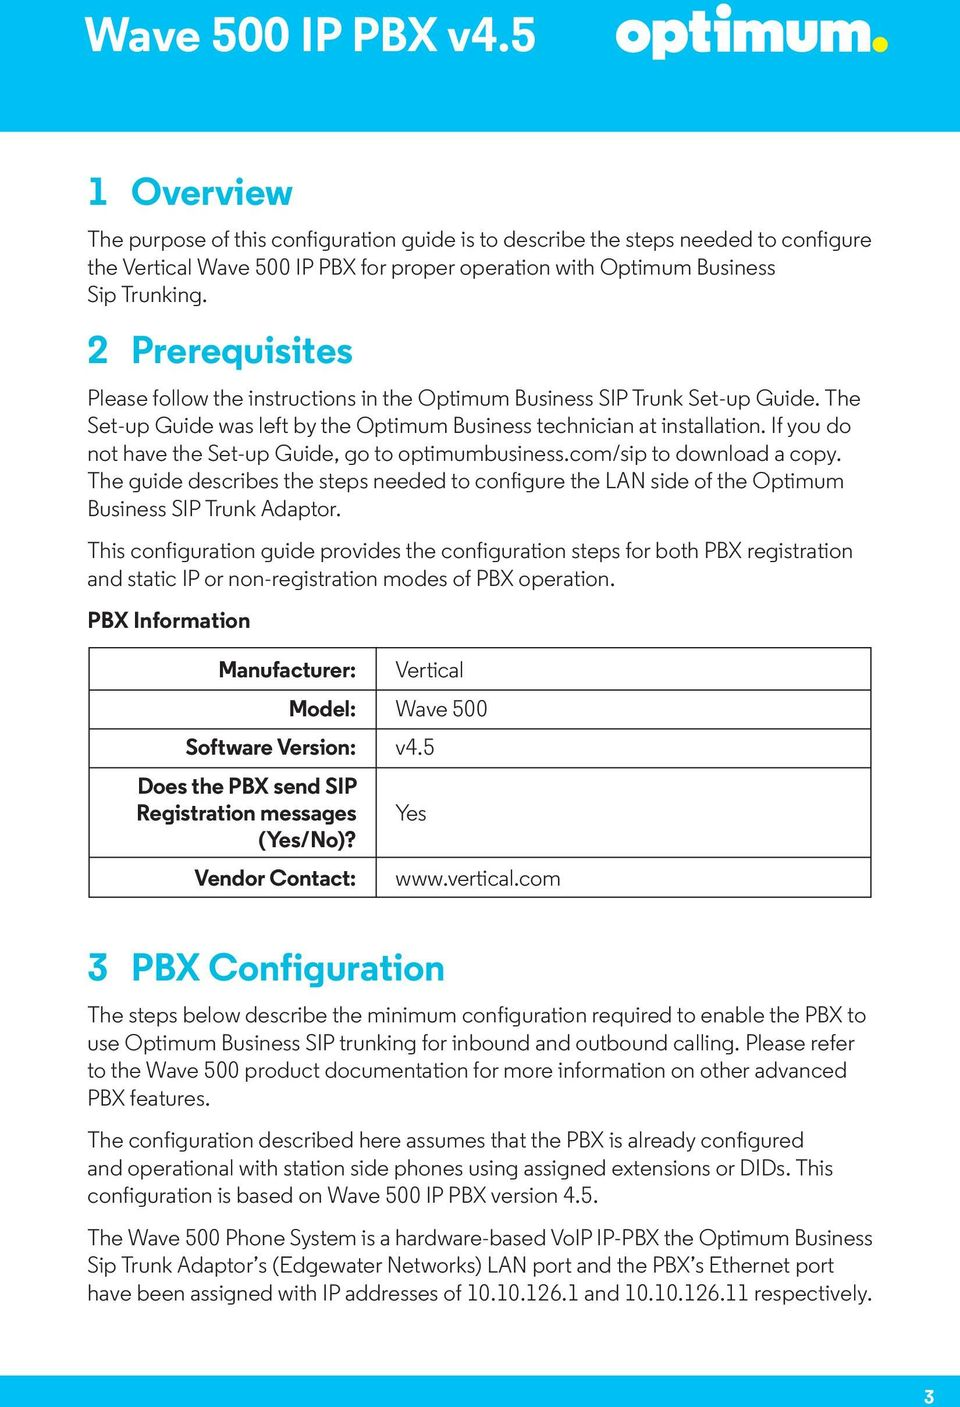 If you do not have the Set-up Guide, go to optimumbusiness.com/sip to download a copy. The guide describes the steps needed to configure the LAN side of the Optimum Business SIP Trunk Adaptor.